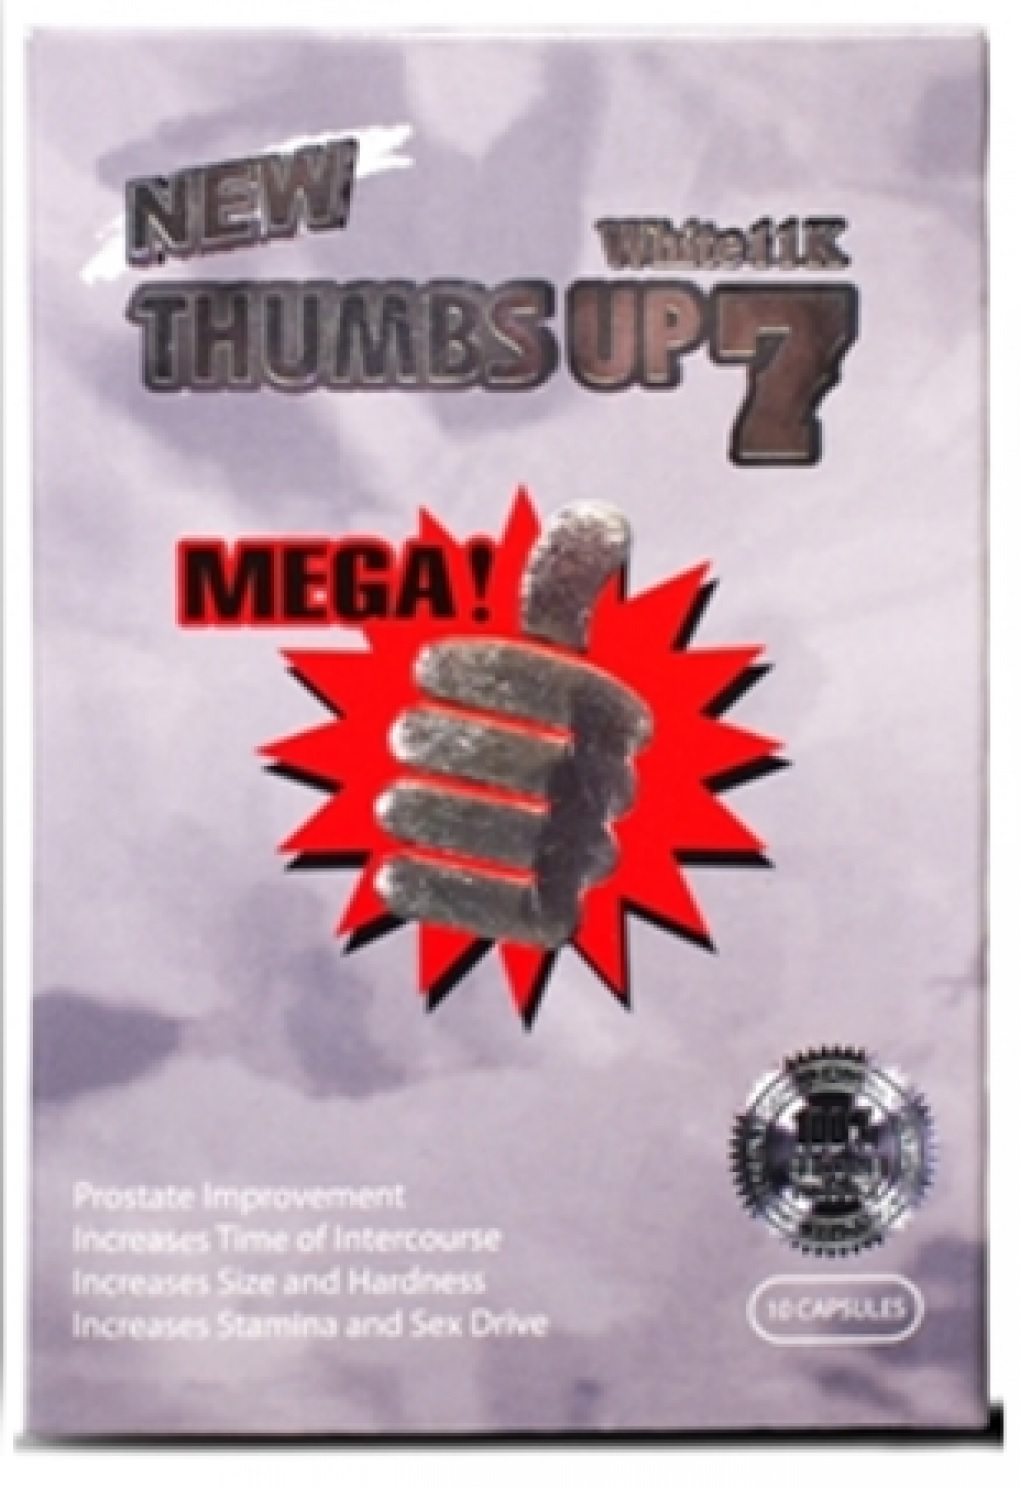 Image of the illigal product: Thumbs Up 7 (White)